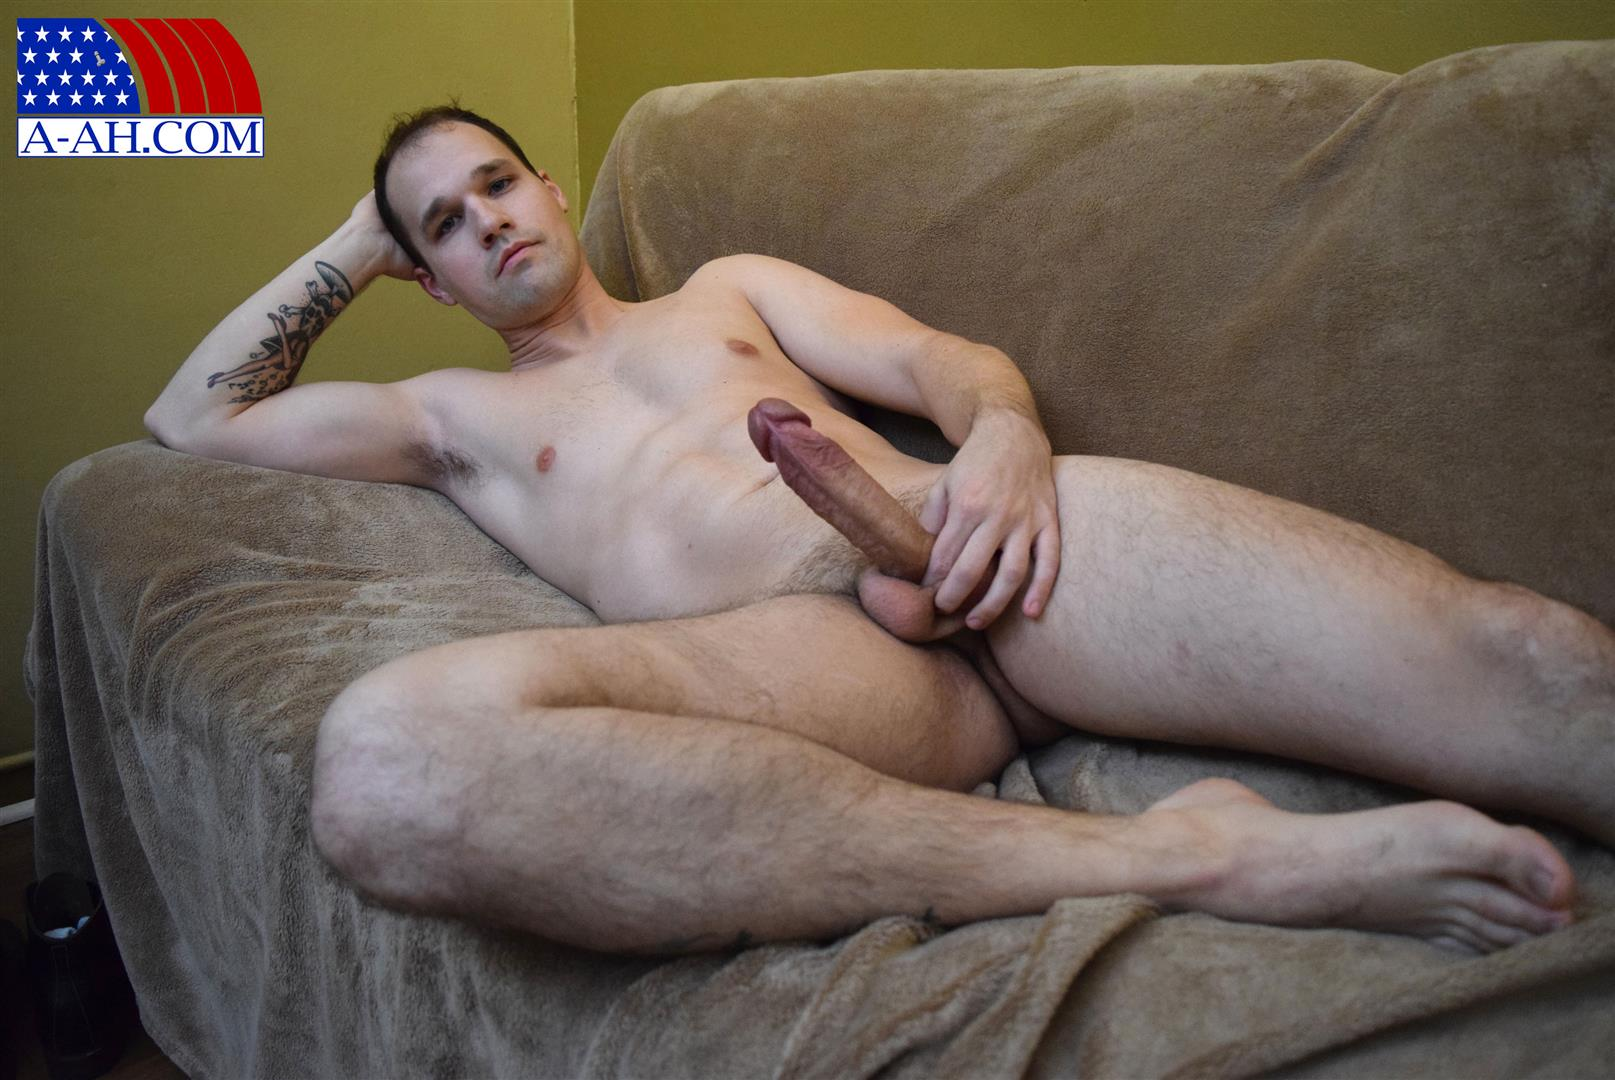 All-American-Heroes-Navy-Petty-Officer-Chris-Big-Uncut-Cock-Amateur-Gay-Porn-10 US Navy Petty Officer Stroking His Big Uncut Cock